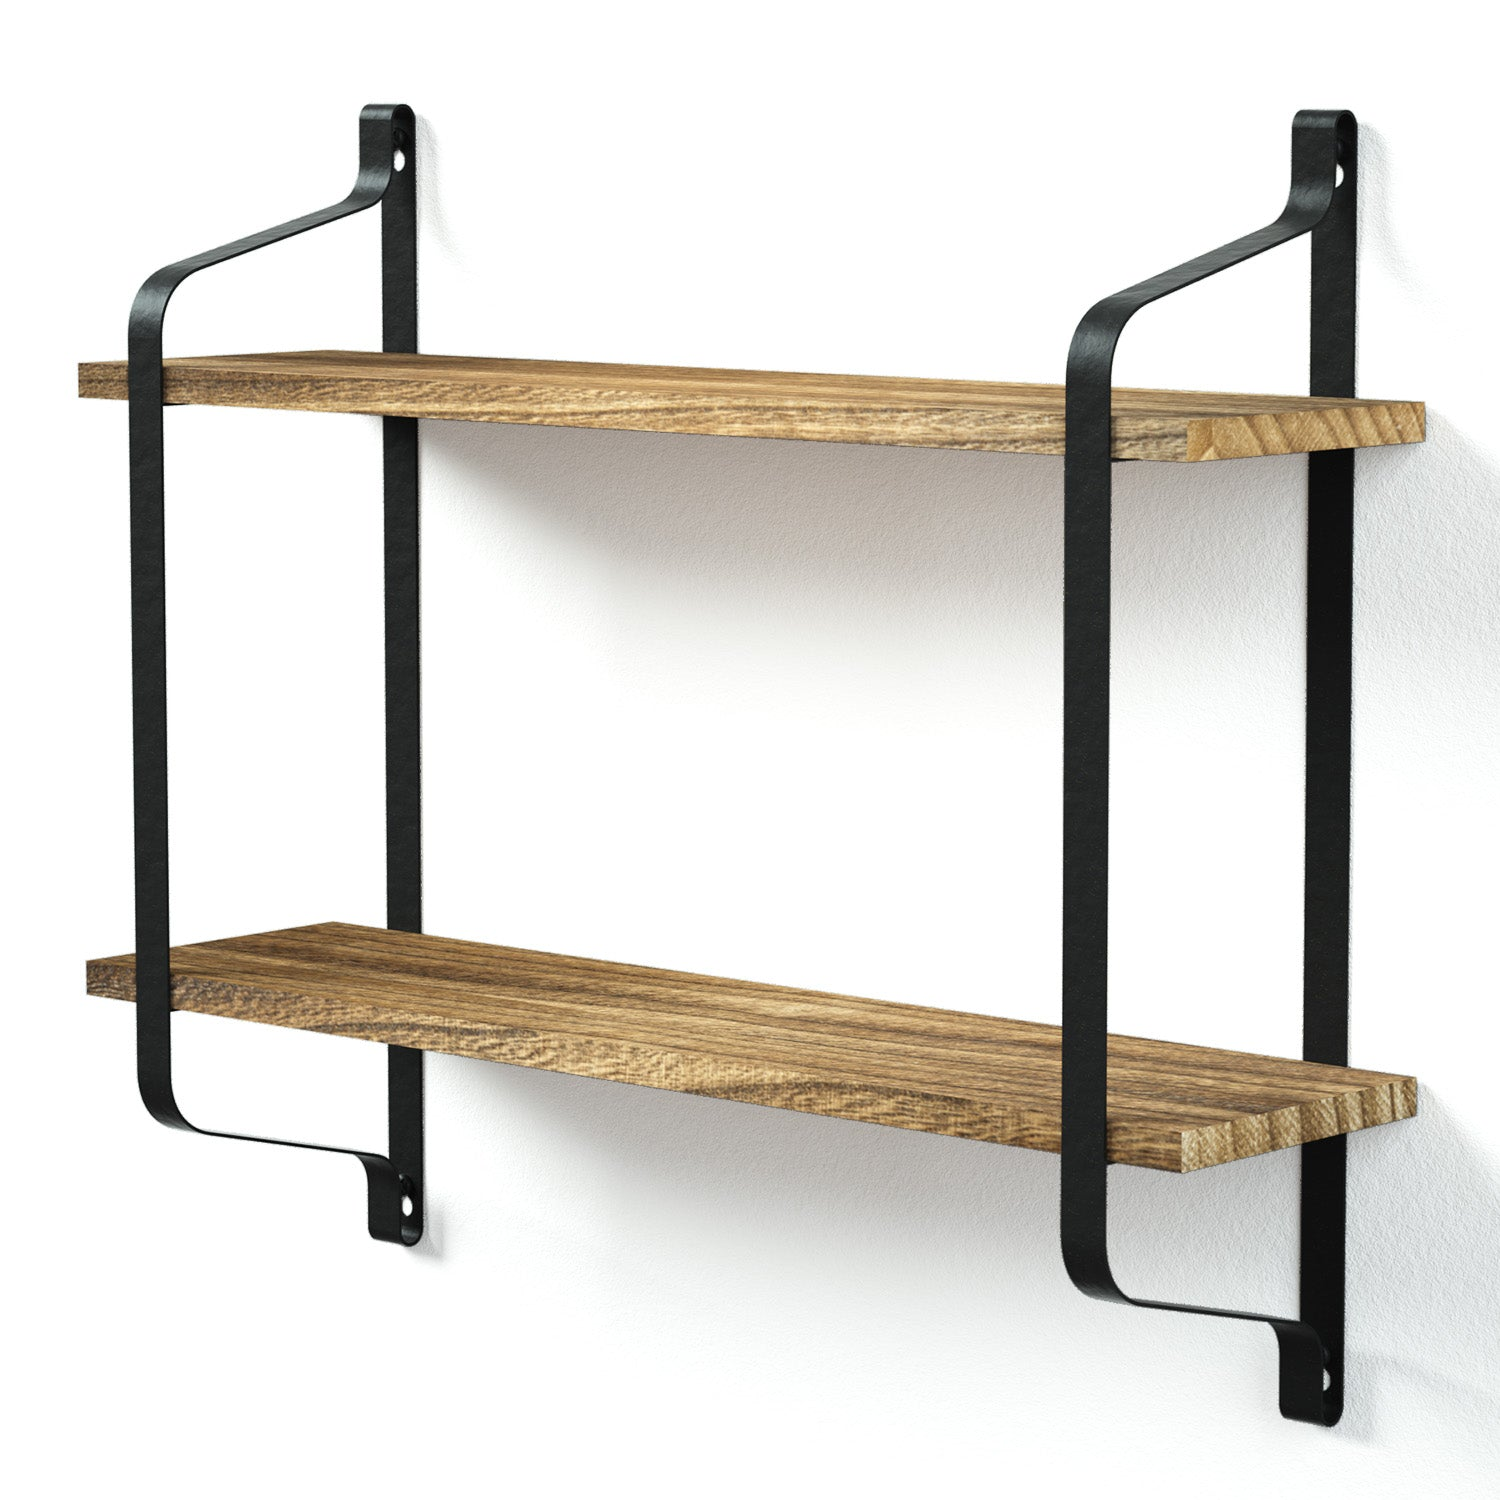 Love-KANKEI Industrial Wood Wall Shelves for Pantry Carbonized Black